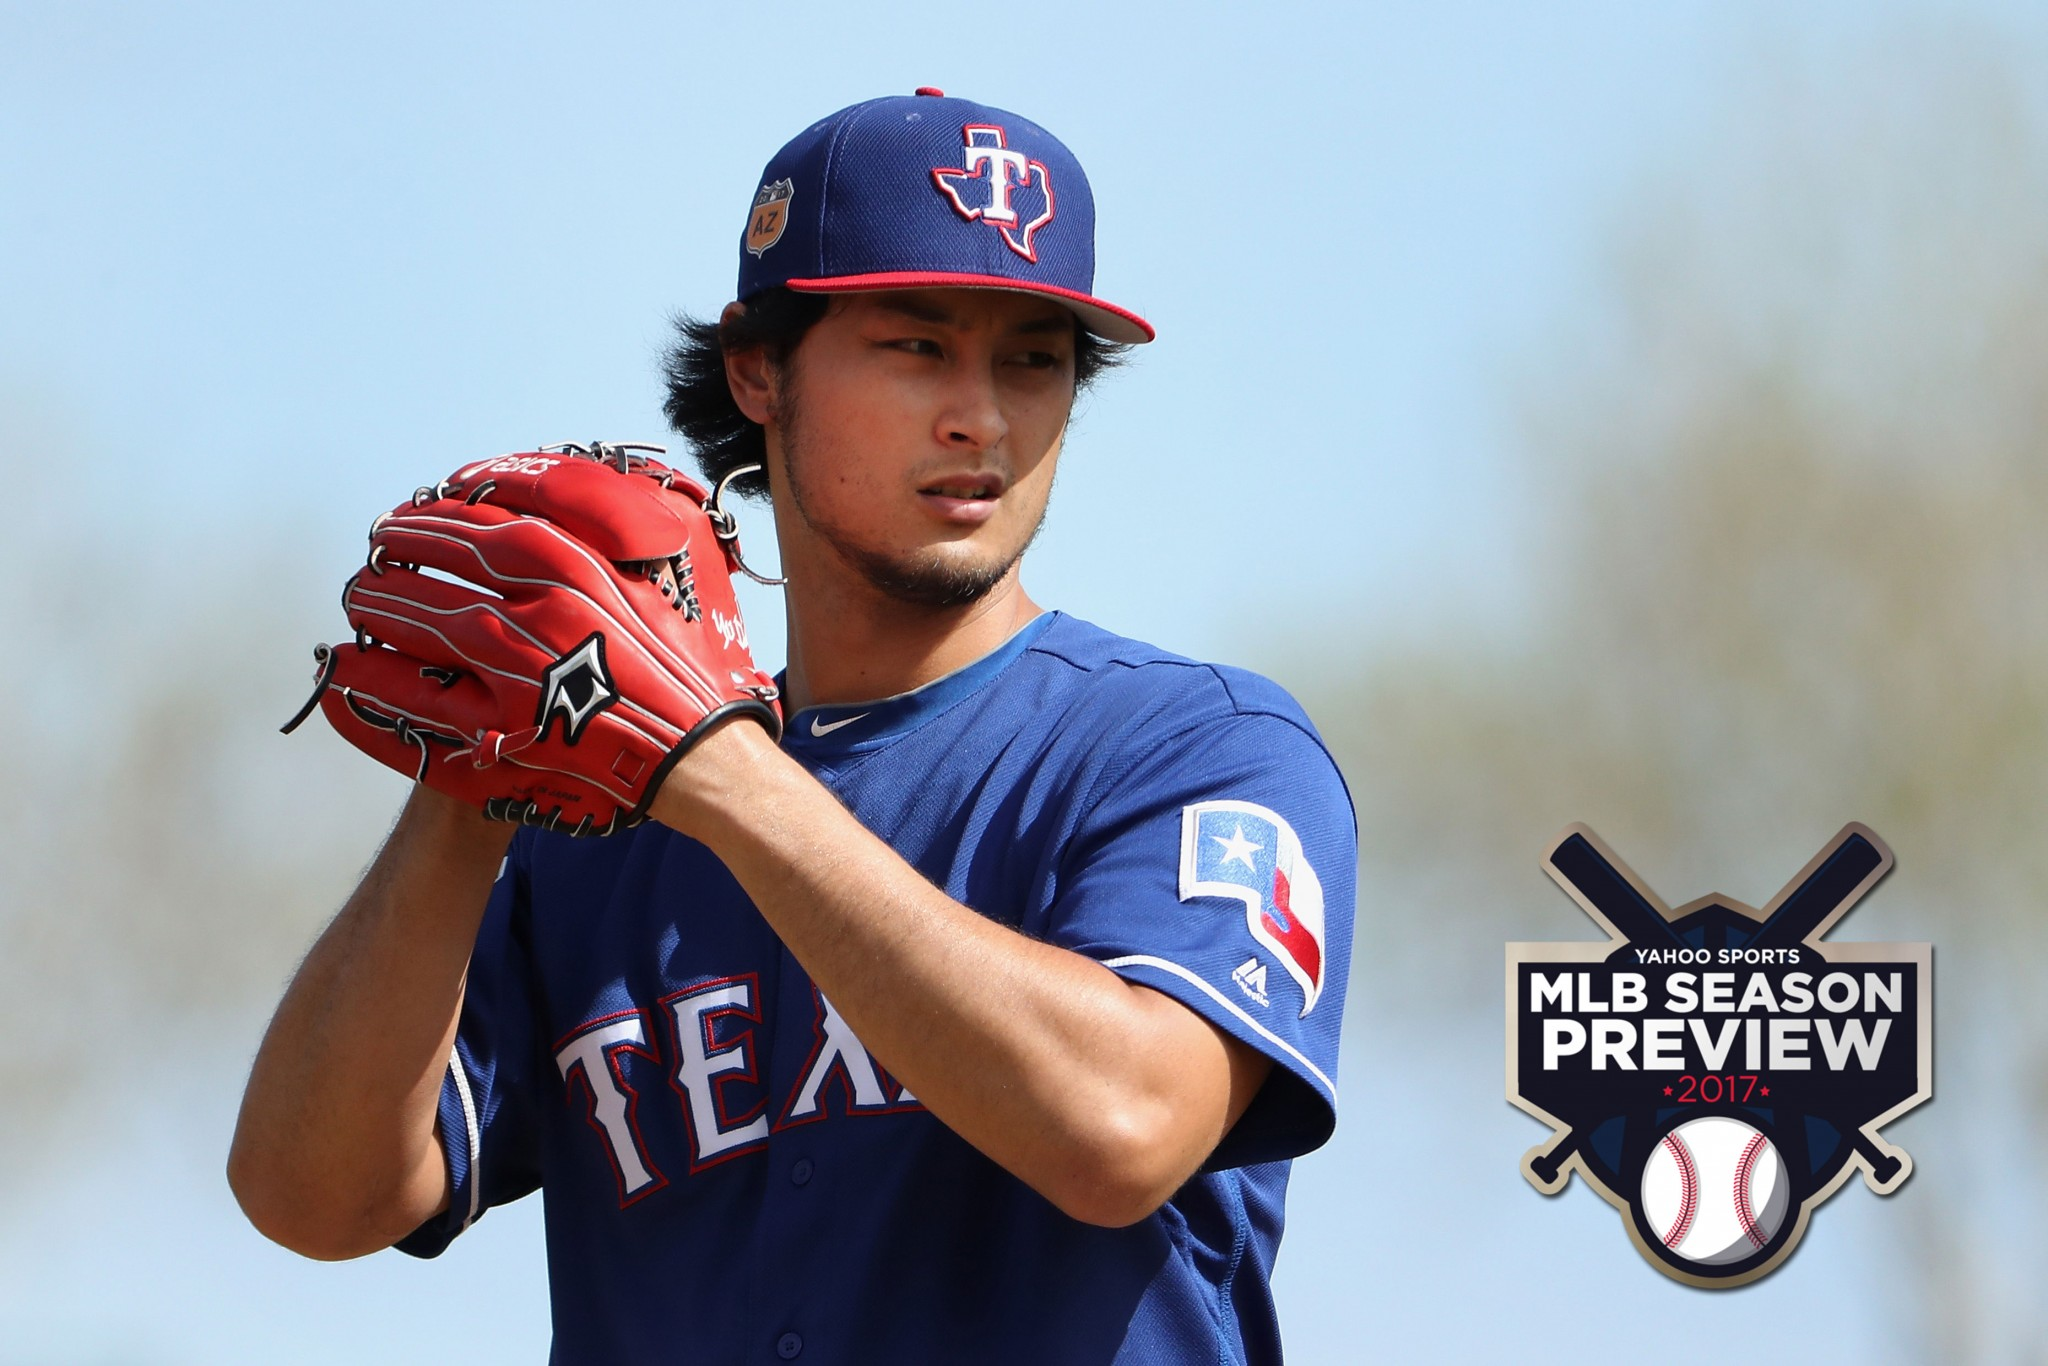 The Rangers are hoping Yu Darvish is back to his ace self after Tommy John surgery. (Getty Images)